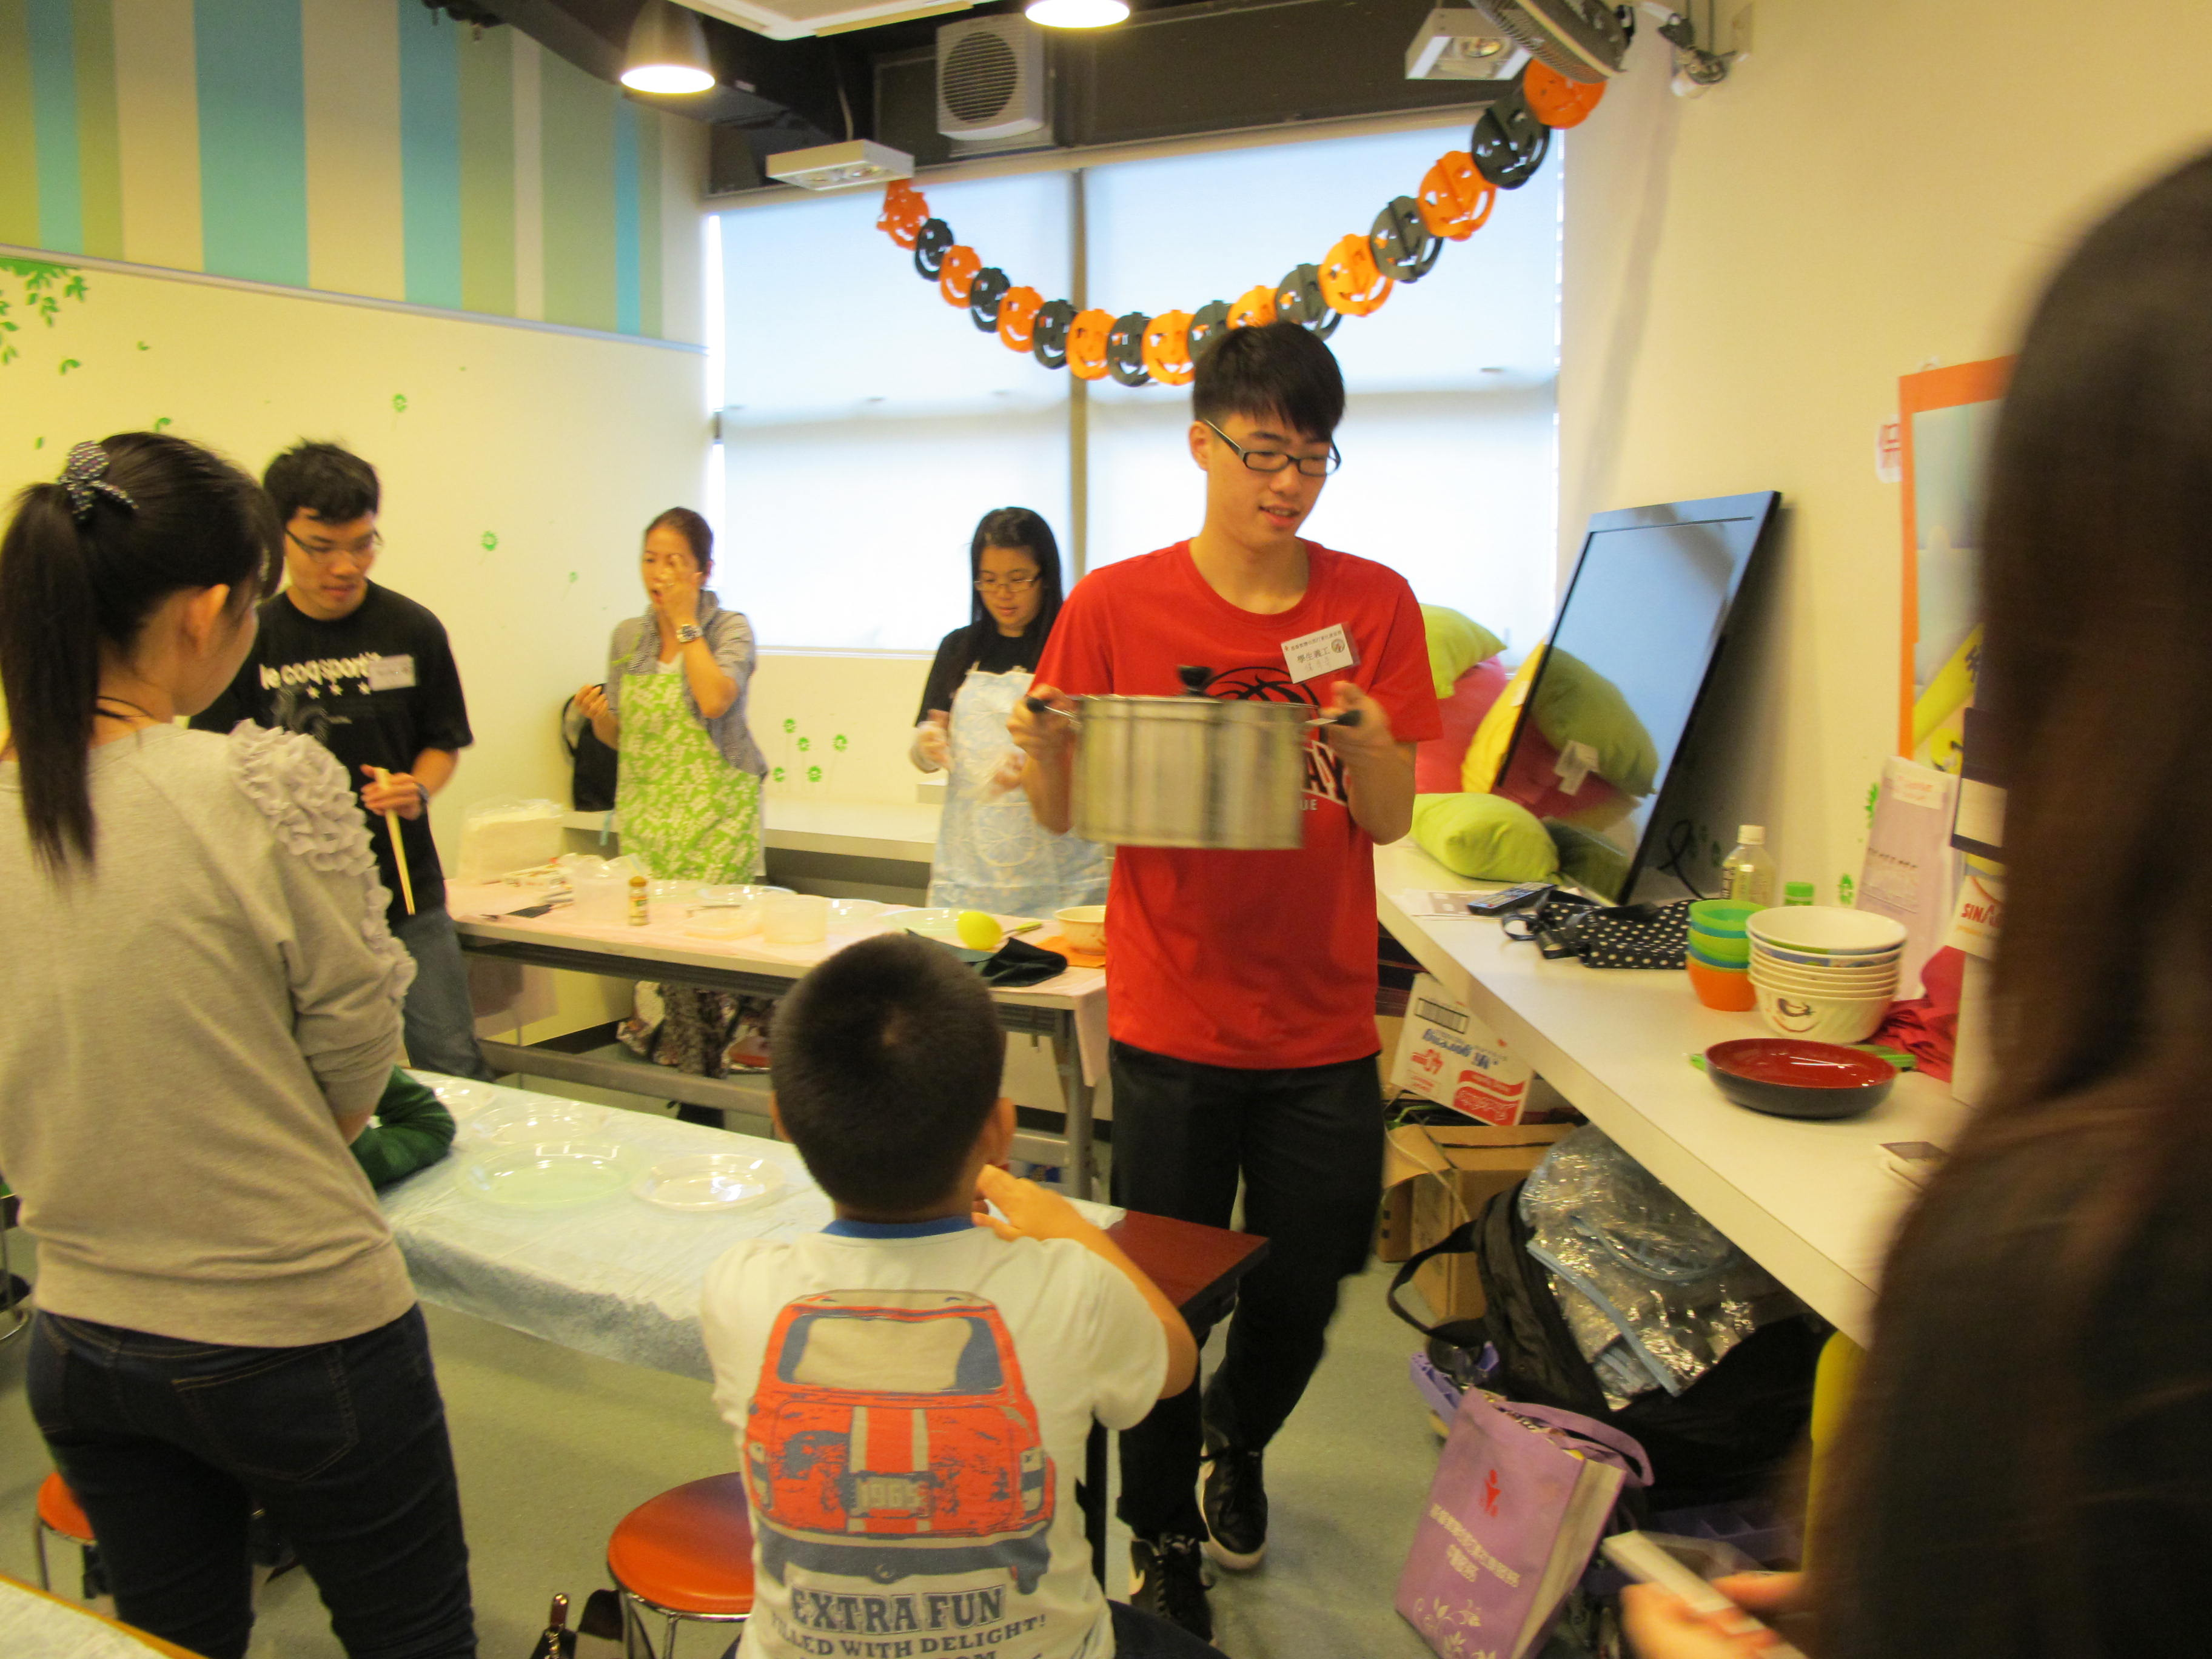 United Christian Nethersole Community Health Service Project -- 餐餐智慳嚐有營 - Photo - 37